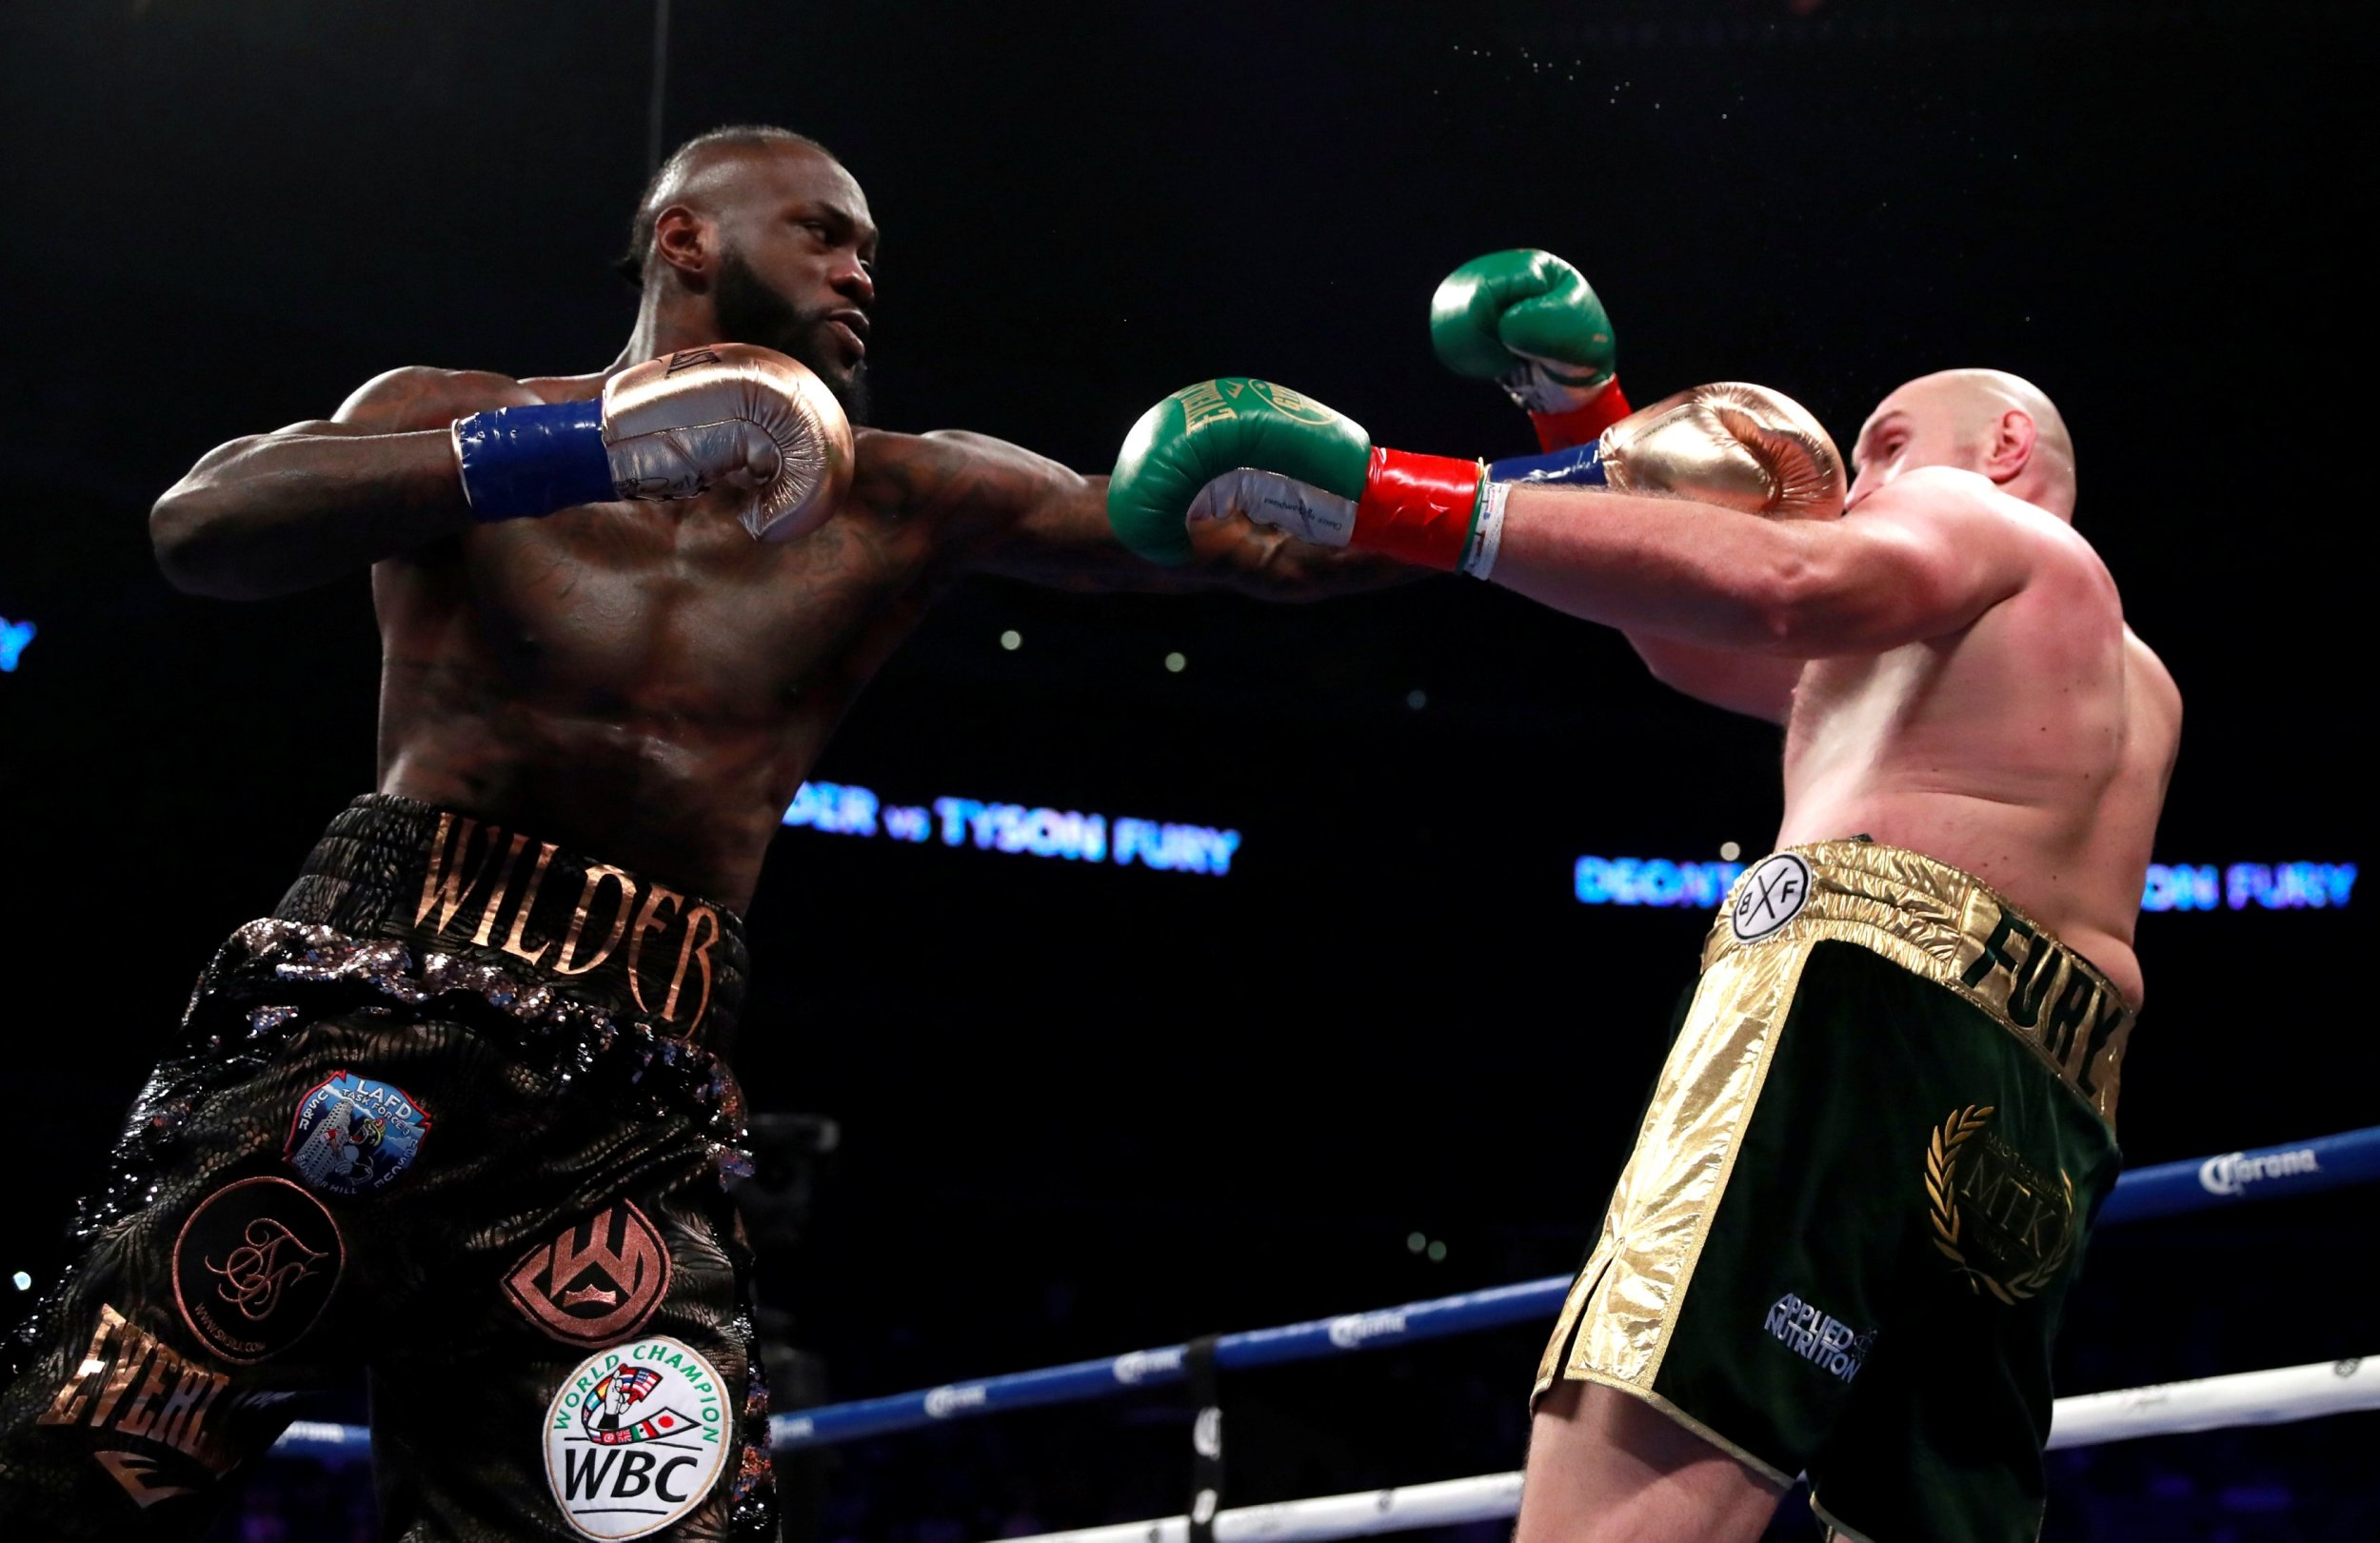 Deontay Wilder retains heavyweight title, defeats Tyson Fury via split draw